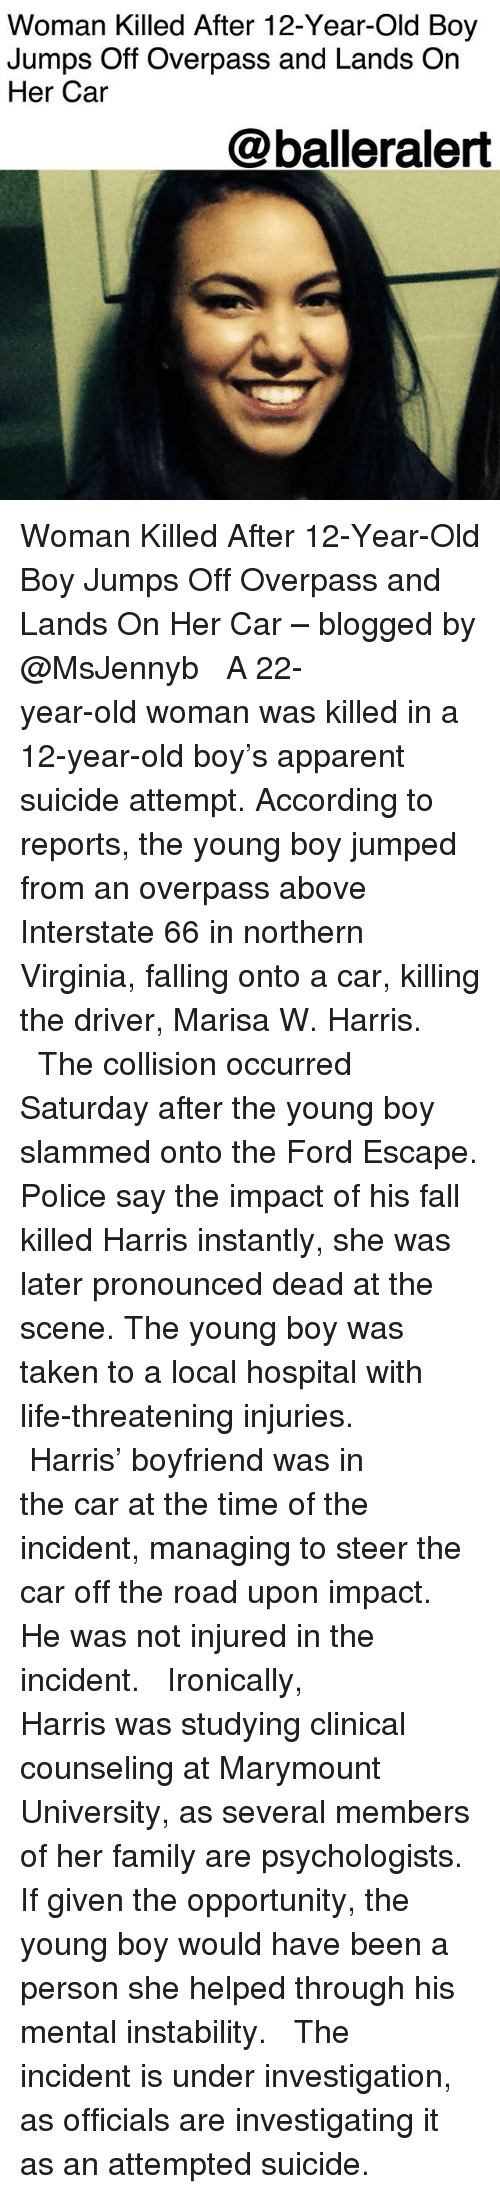 Fall, Family, and Life: Woman Killed After 12-Year-Old Boy  Jumps Off Overpass and Lands On  Her Car  @balleralert Woman Killed After 12-Year-Old Boy Jumps Off Overpass and Lands On Her Car – blogged by @MsJennyb ⠀⠀⠀⠀⠀⠀⠀ ⠀⠀⠀⠀⠀⠀⠀ A 22-year-old woman was killed in a 12-year-old boy's apparent suicide attempt. According to reports, the young boy jumped from an overpass above Interstate 66 in northern Virginia, falling onto a car, killing the driver, Marisa W. Harris. ⠀⠀⠀⠀⠀⠀⠀ ⠀⠀⠀⠀⠀⠀⠀ The collision occurred Saturday after the young boy slammed onto the Ford Escape. Police say the impact of his fall killed Harris instantly, she was later pronounced dead at the scene. The young boy was taken to a local hospital with life-threatening injuries. ⠀⠀⠀⠀⠀⠀⠀ ⠀⠀⠀⠀⠀⠀⠀ Harris' boyfriend was in the car at the time of the incident, managing to steer the car off the road upon impact. He was not injured in the incident. ⠀⠀⠀⠀⠀⠀⠀ ⠀⠀⠀⠀⠀⠀⠀ Ironically, Harris was studying clinical counseling at Marymount University, as several members of her family are psychologists. If given the opportunity, the young boy would have been a person she helped through his mental instability. ⠀⠀⠀⠀⠀⠀⠀ ⠀⠀⠀⠀⠀⠀⠀ The incident is under investigation, as officials are investigating it as an attempted suicide.